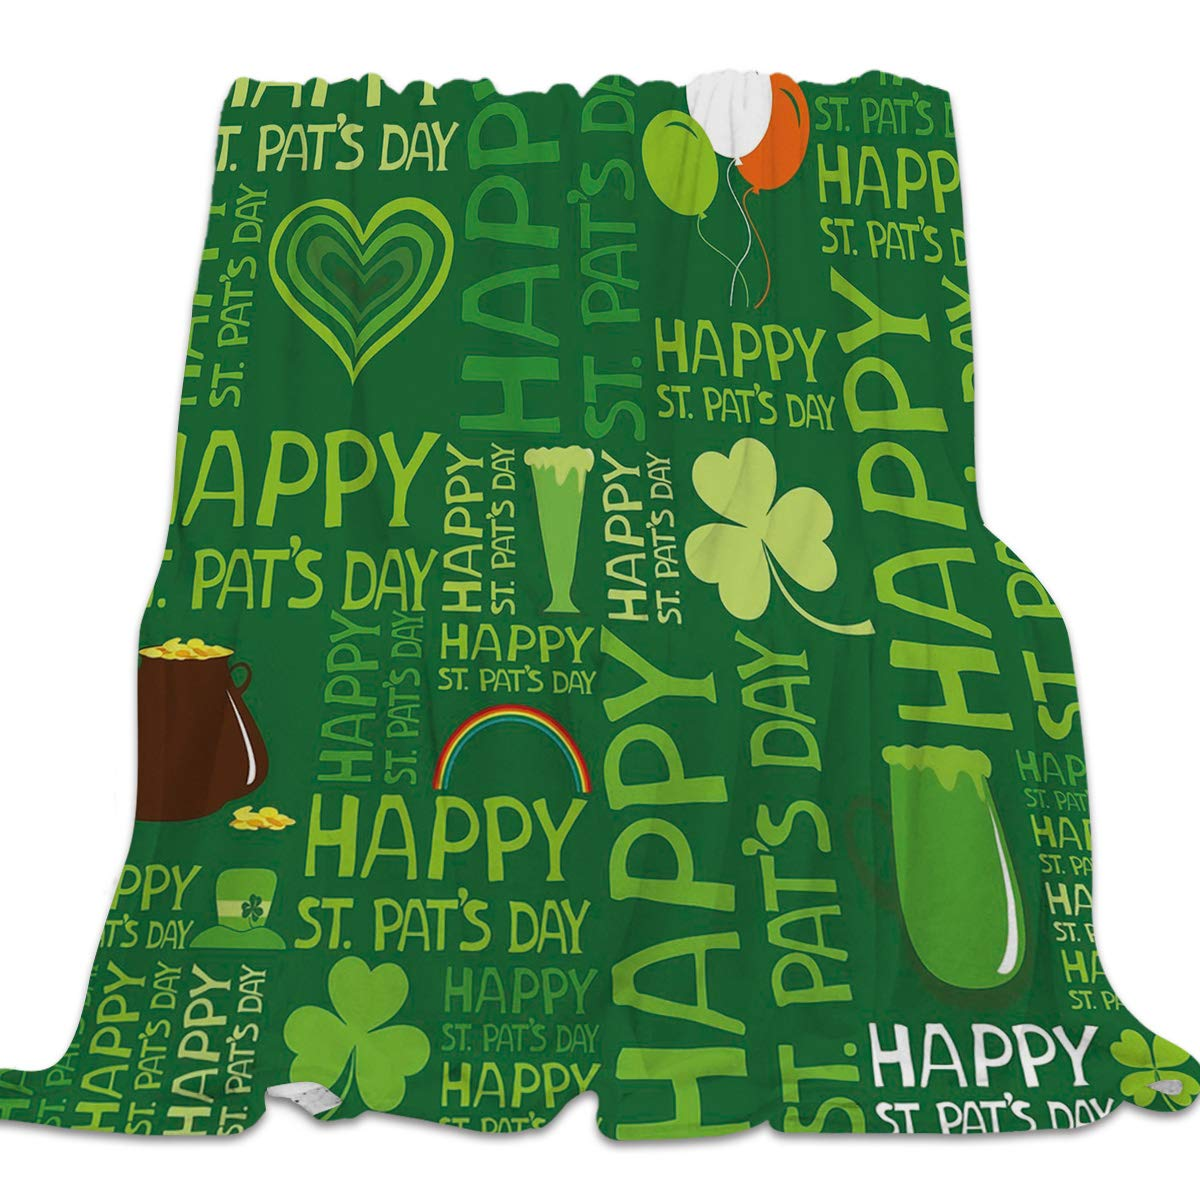 St. Patrick's Day6yag6267 39x49inch=100x125cm YEHO Art Gallery 39x49 Inch Flannel Fleece Bed Blanket Soft Throw-Blankets for Girls Boys,Failure Blackboard Pattern Grey,Lightweight Warm Kids Blankets for Bedroom Living Room Sofa Couch Home Decor